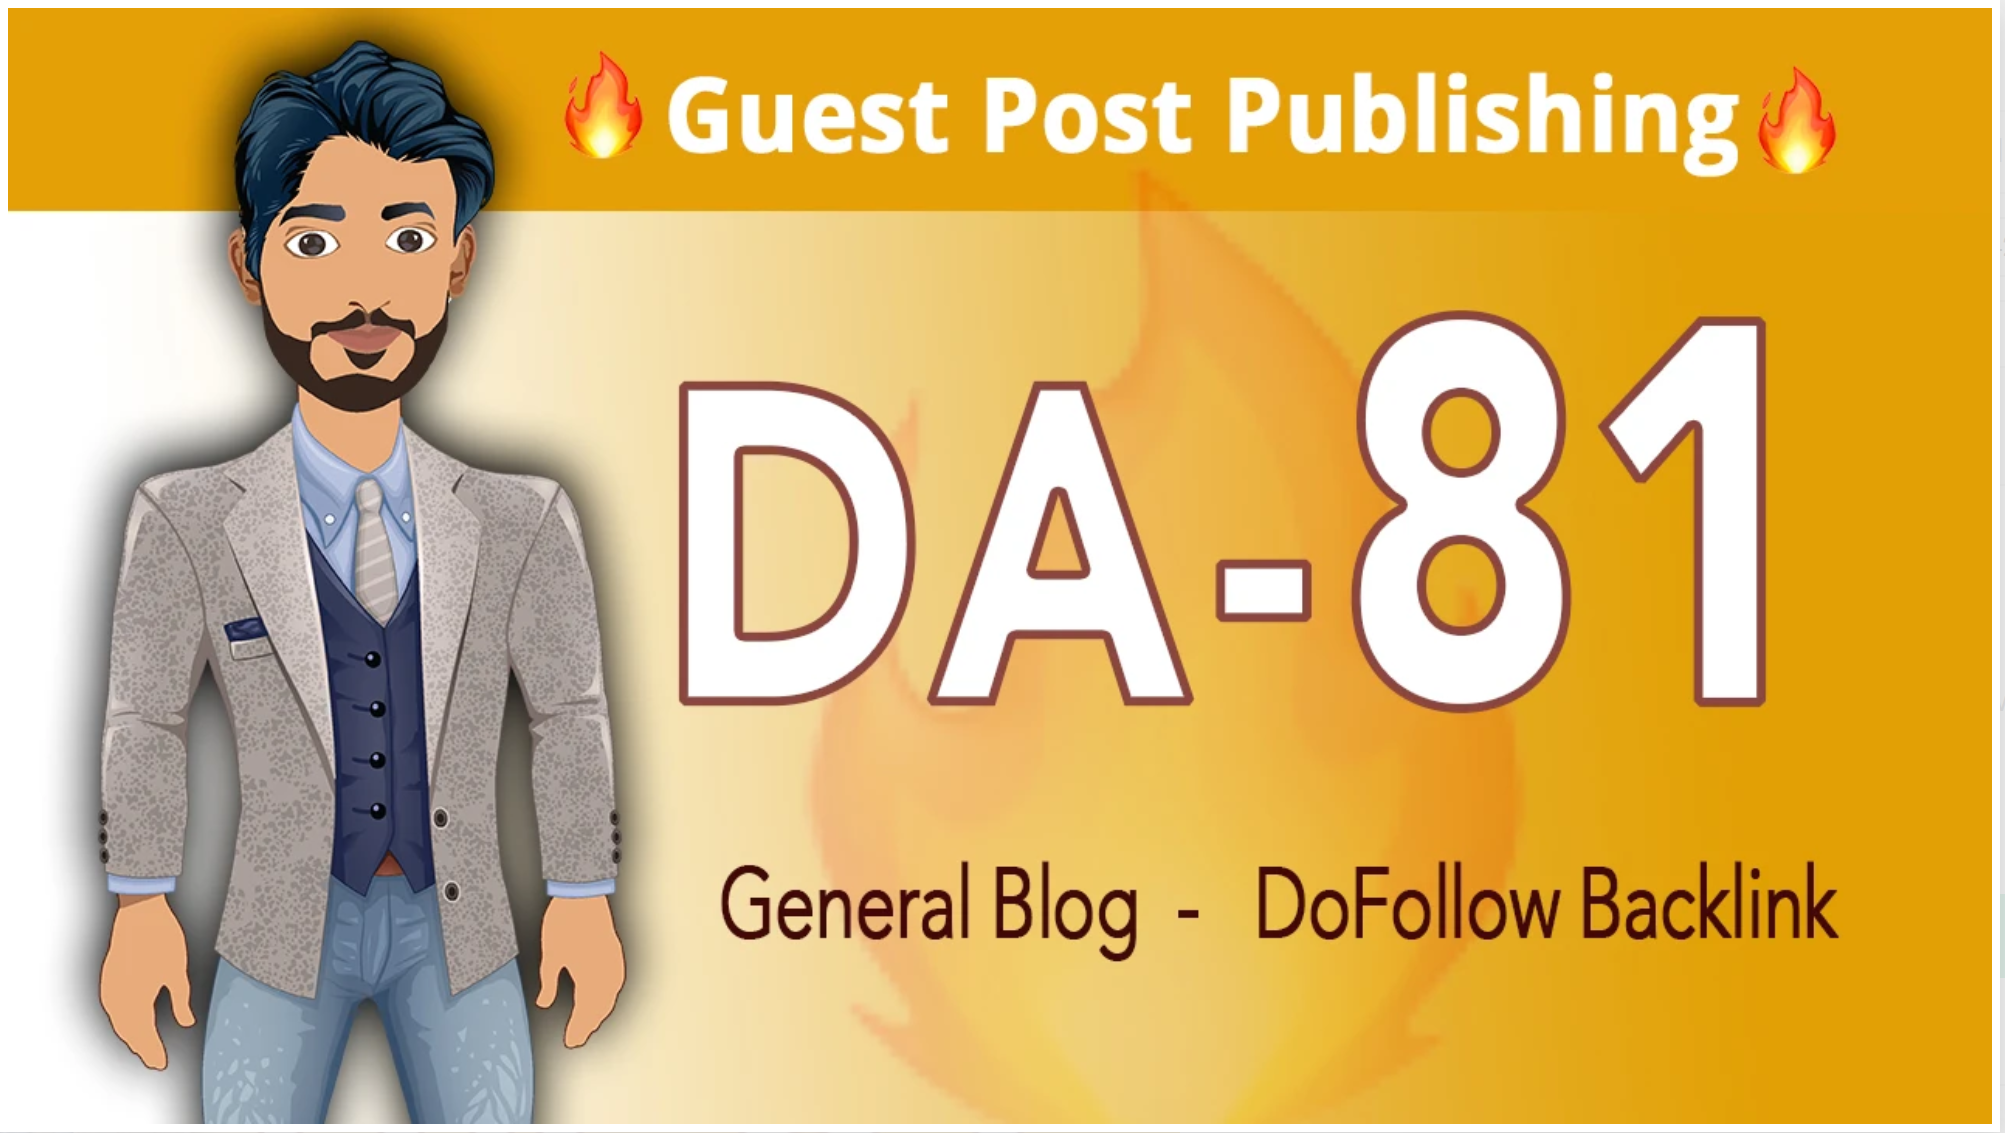 guest post on da 81 news blog with dofollow link